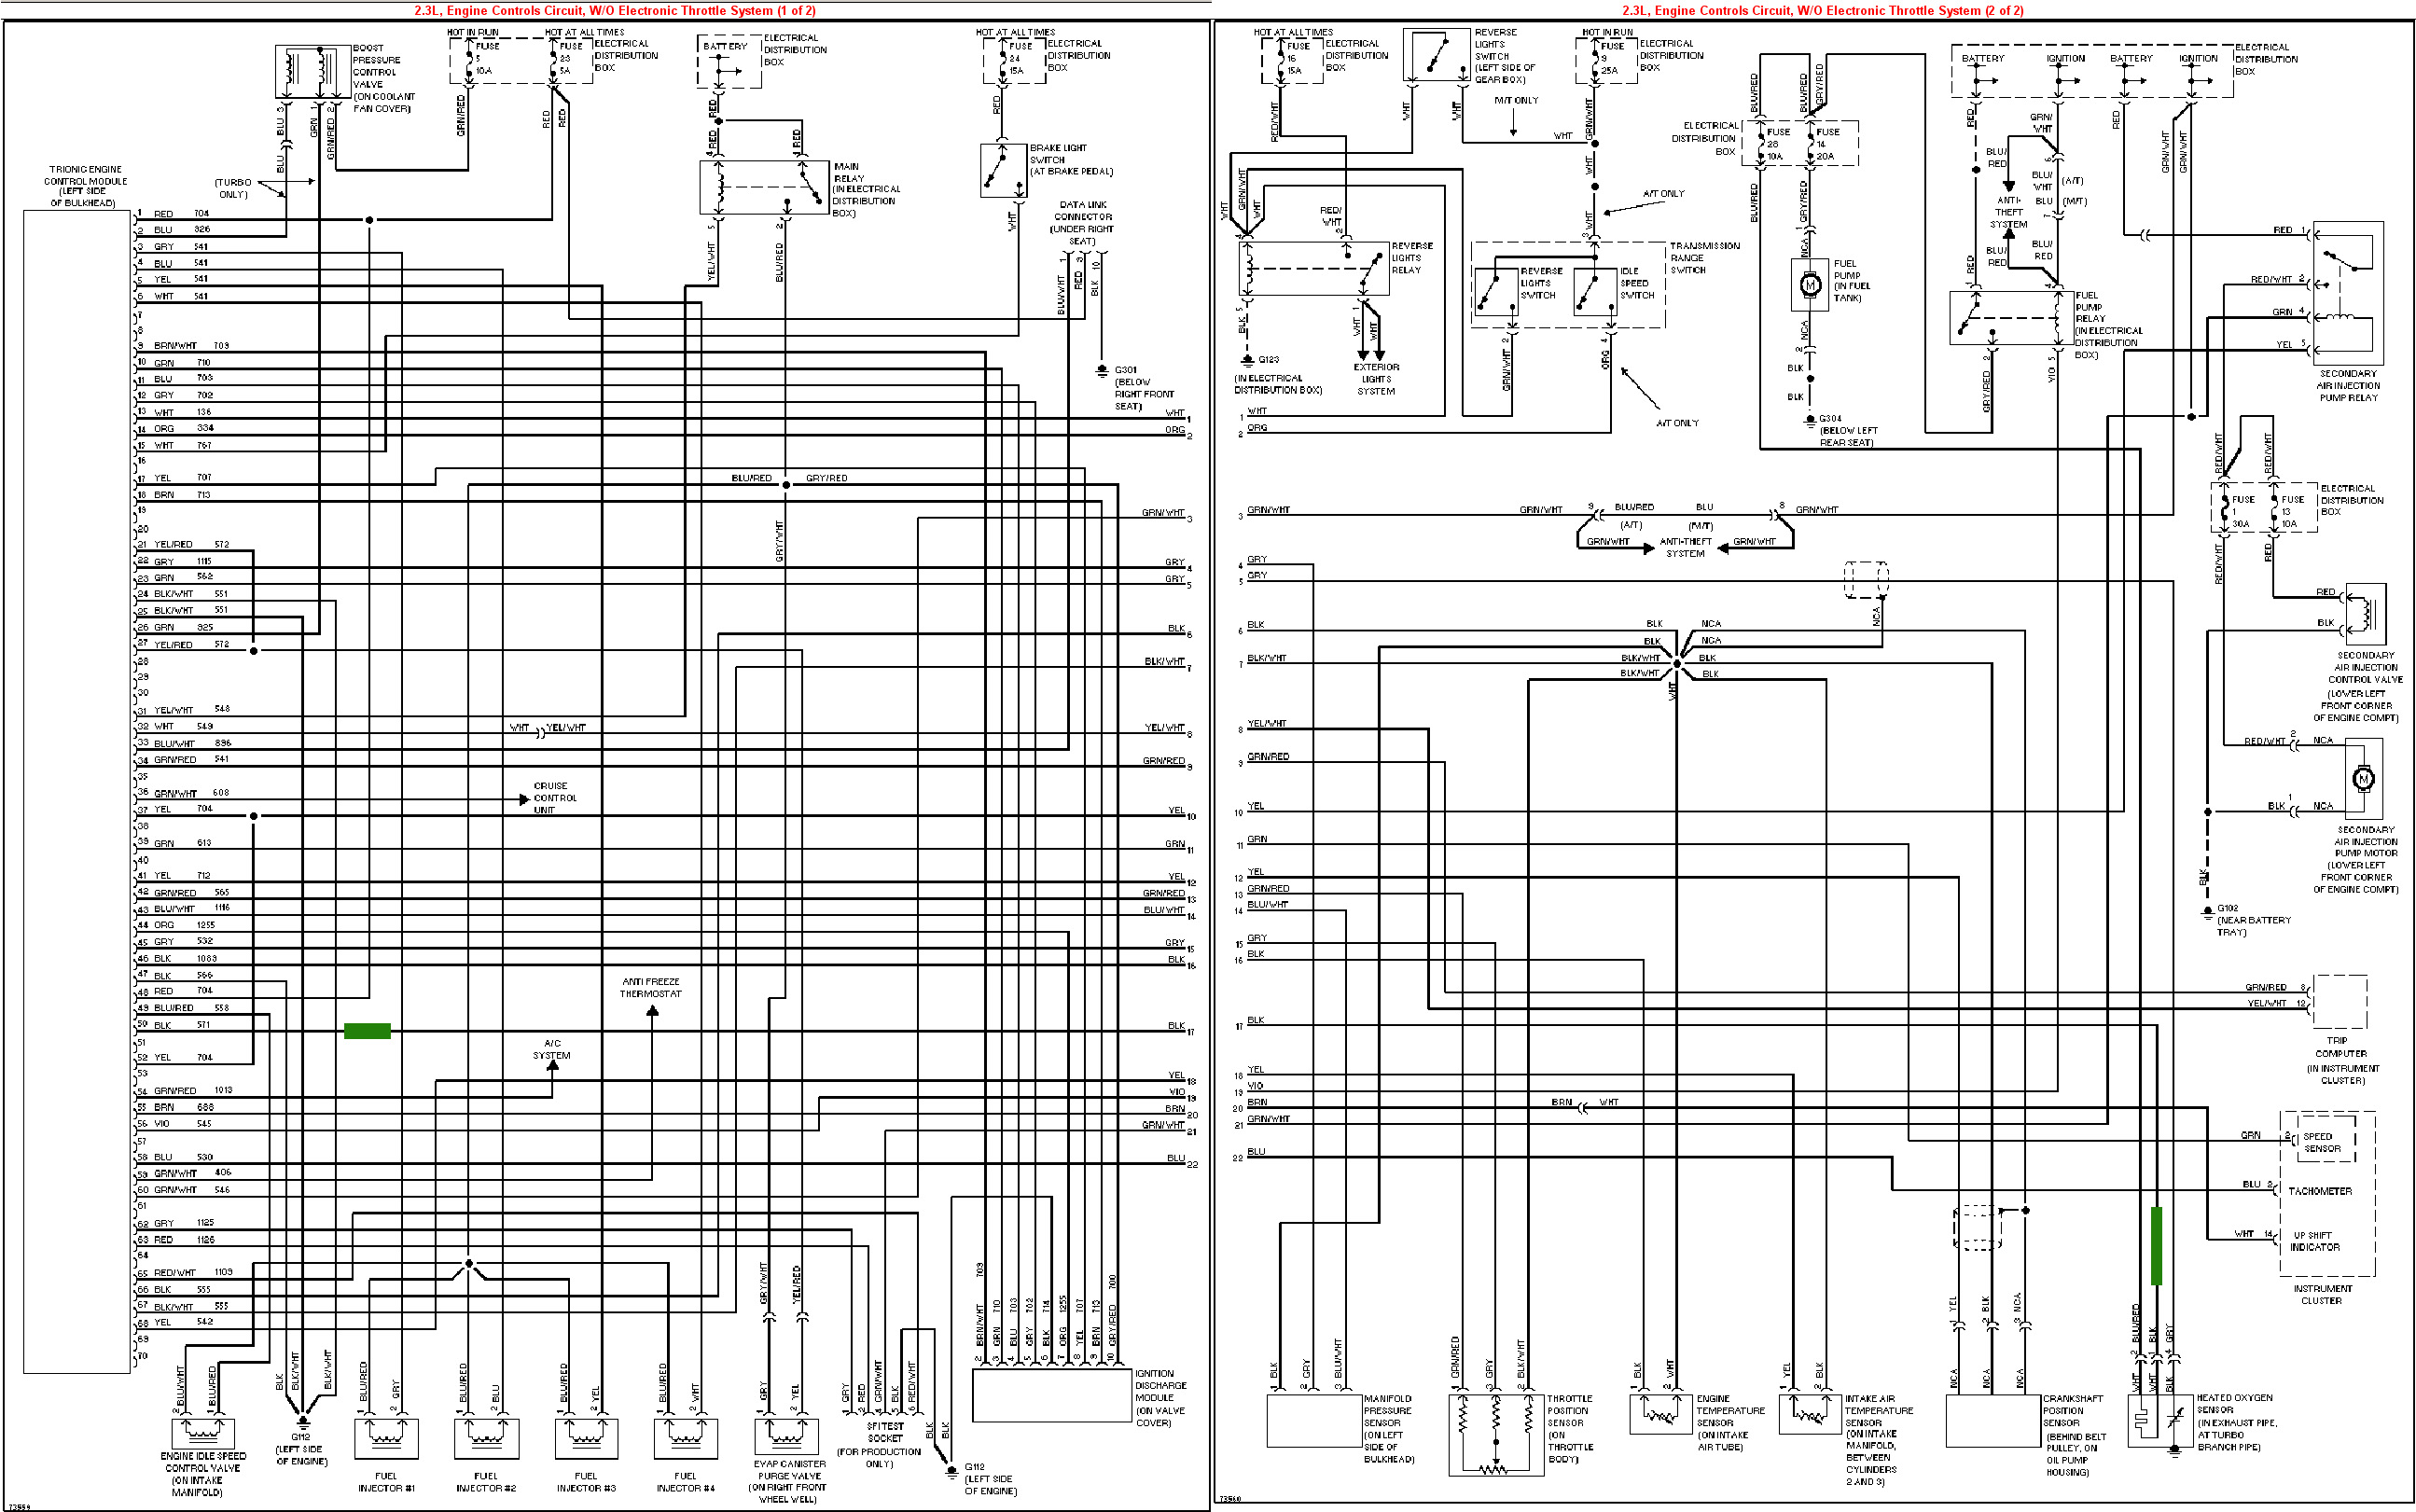 Saab 93 Wiring Diagrams Starting Know About Wiring Diagram \u2022 2006  Honda Odyssey Wiring Diagram 2004 Saab 9 5 Wiring Diagram